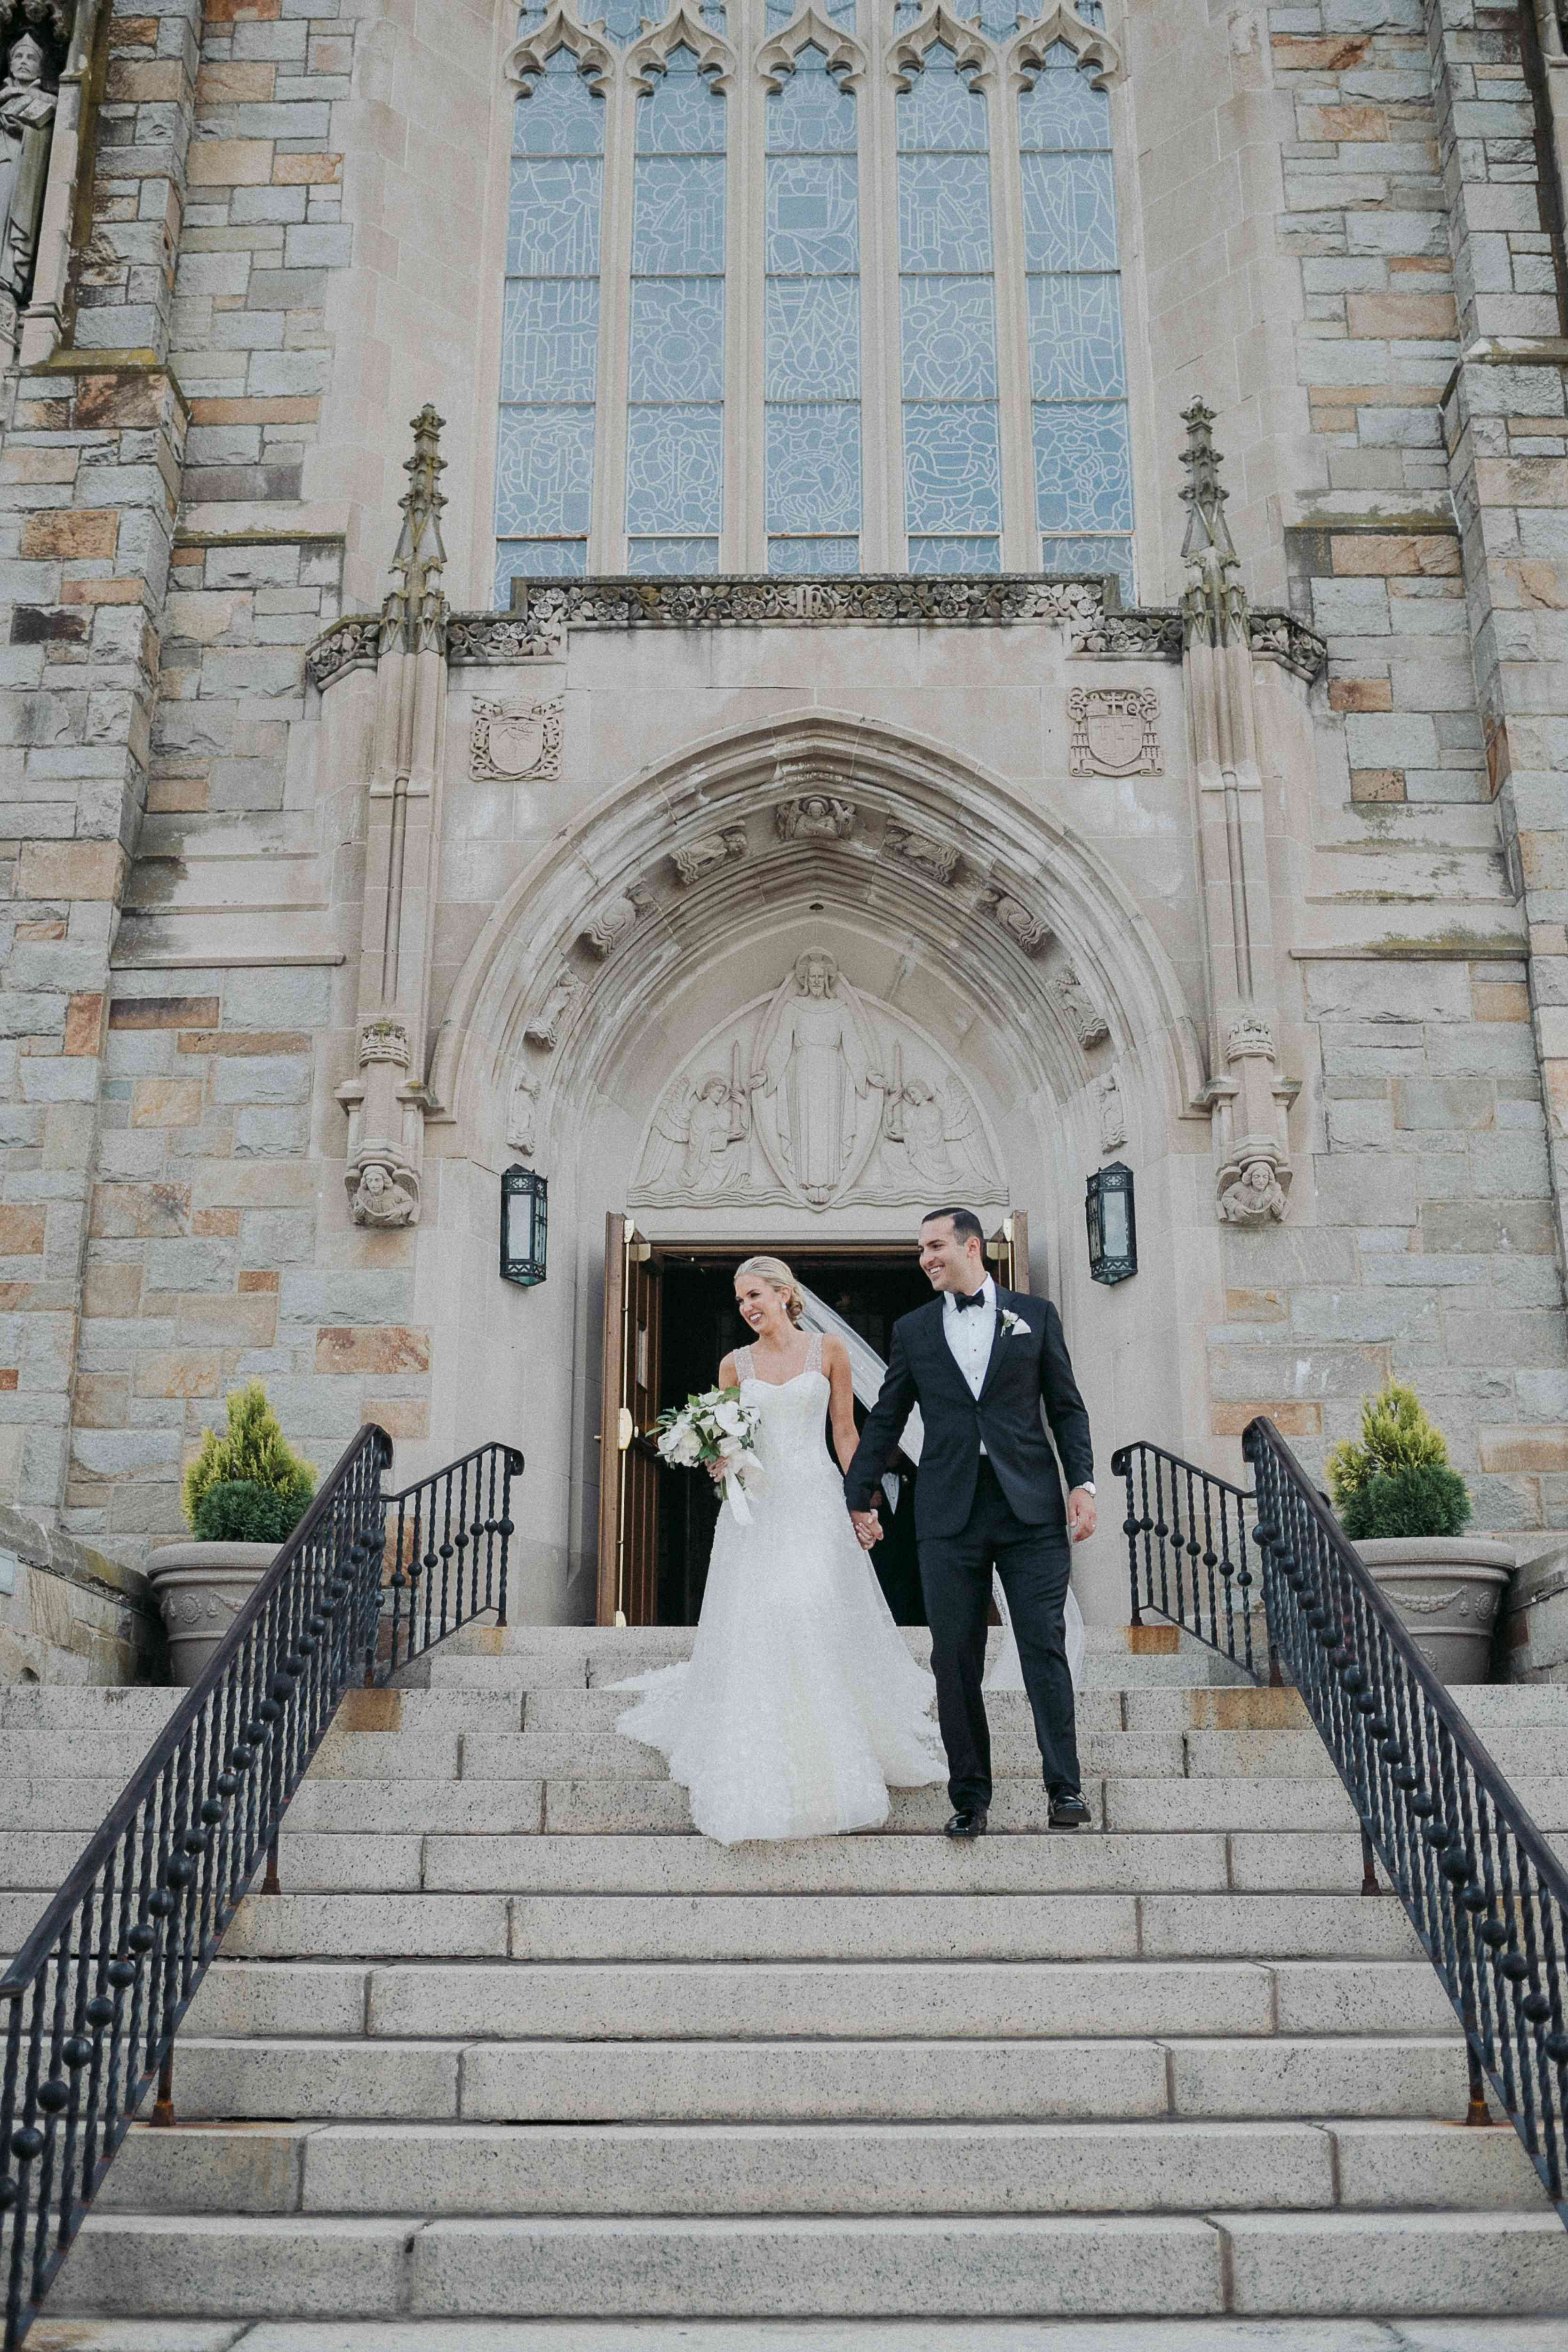 <p>Bride and groom leaving church</p><br><br>